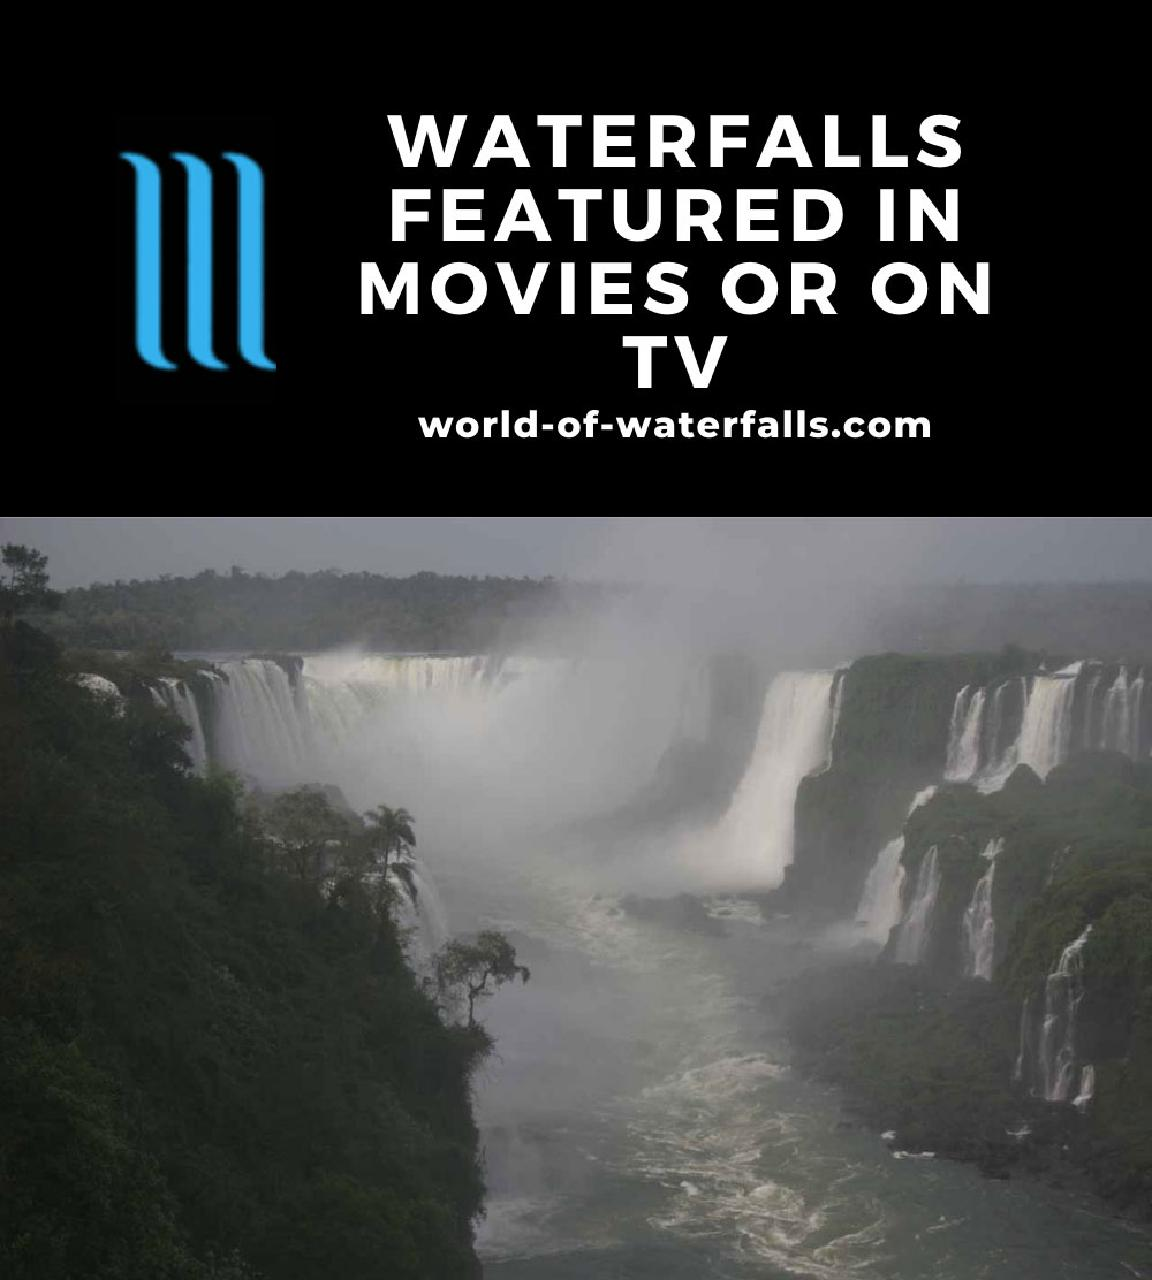 Waterfalls featured in Movies or on TV